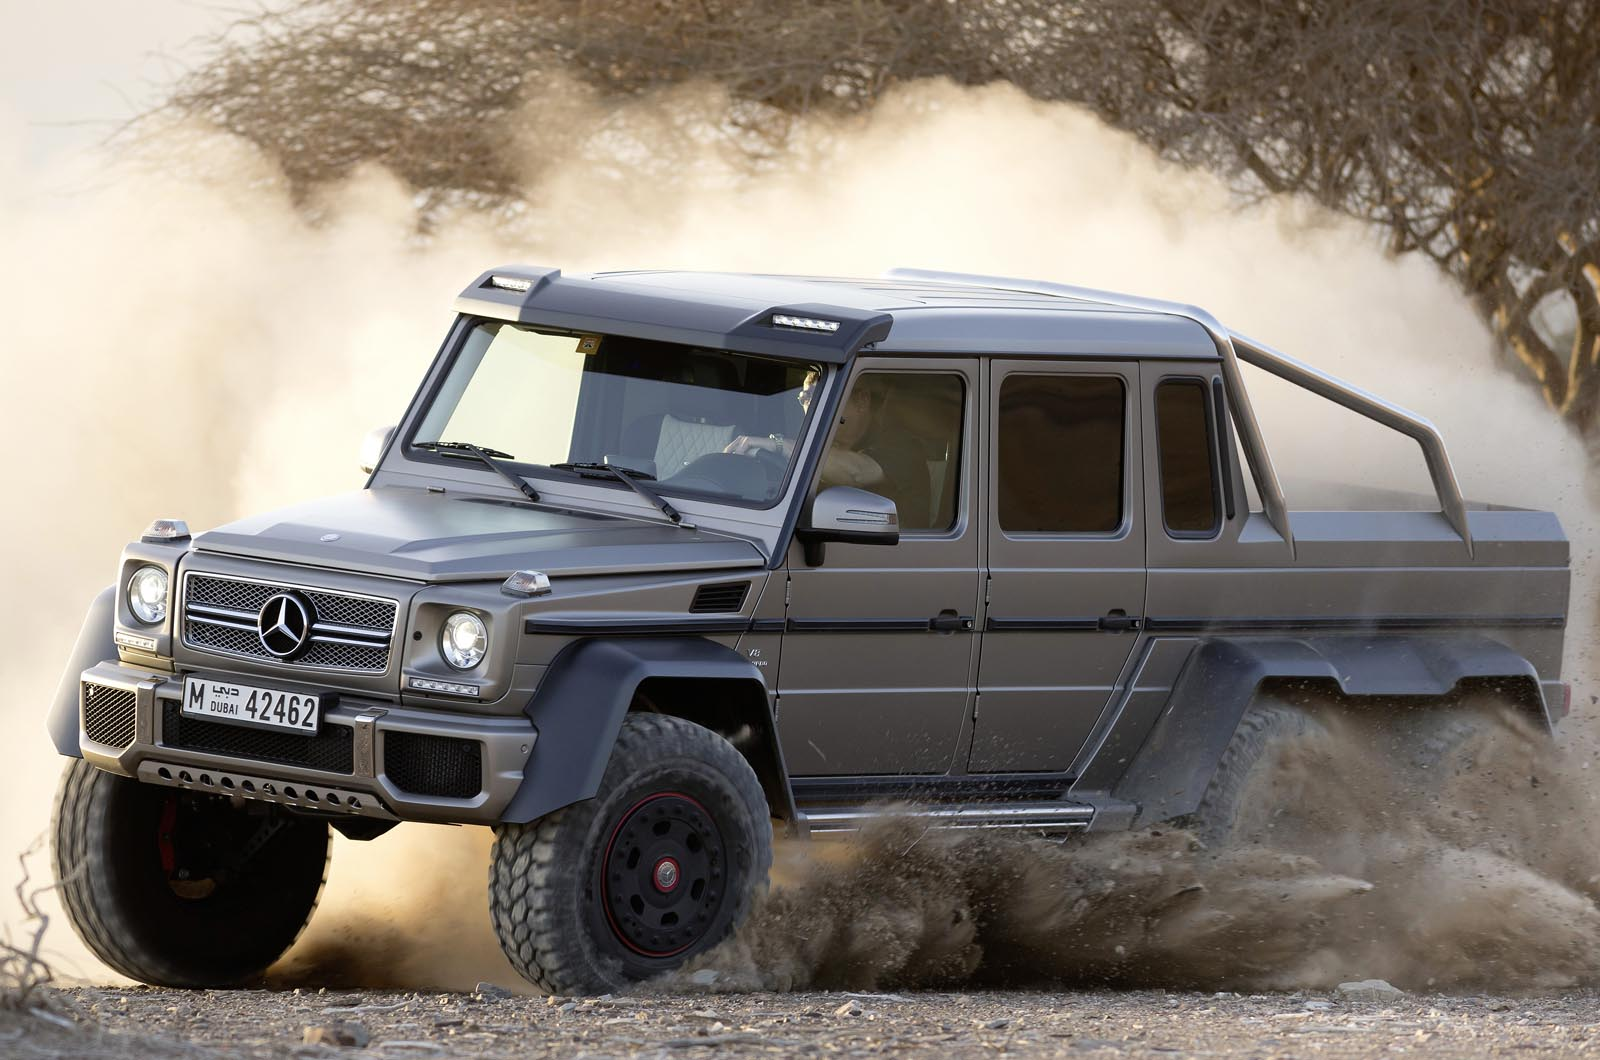 Mercedes Benz G63 Amg 6x6 To Cost 380k Autocar